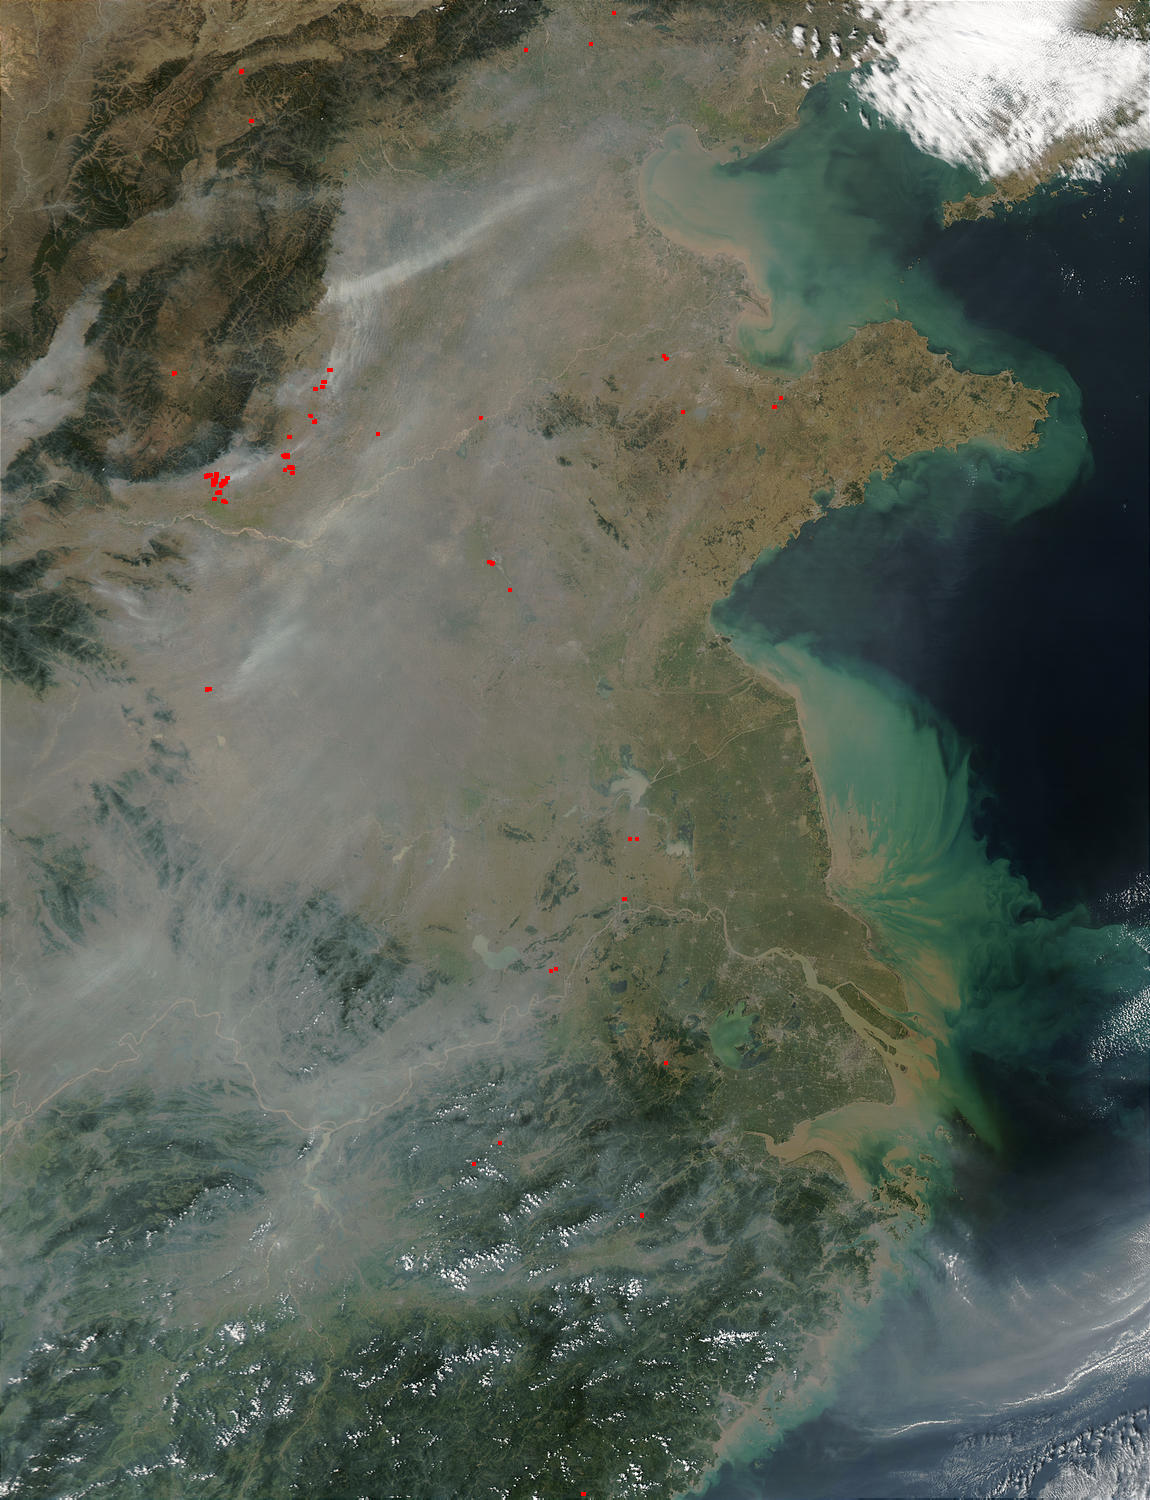 Smoke and pollution in Eastern China - related image preview